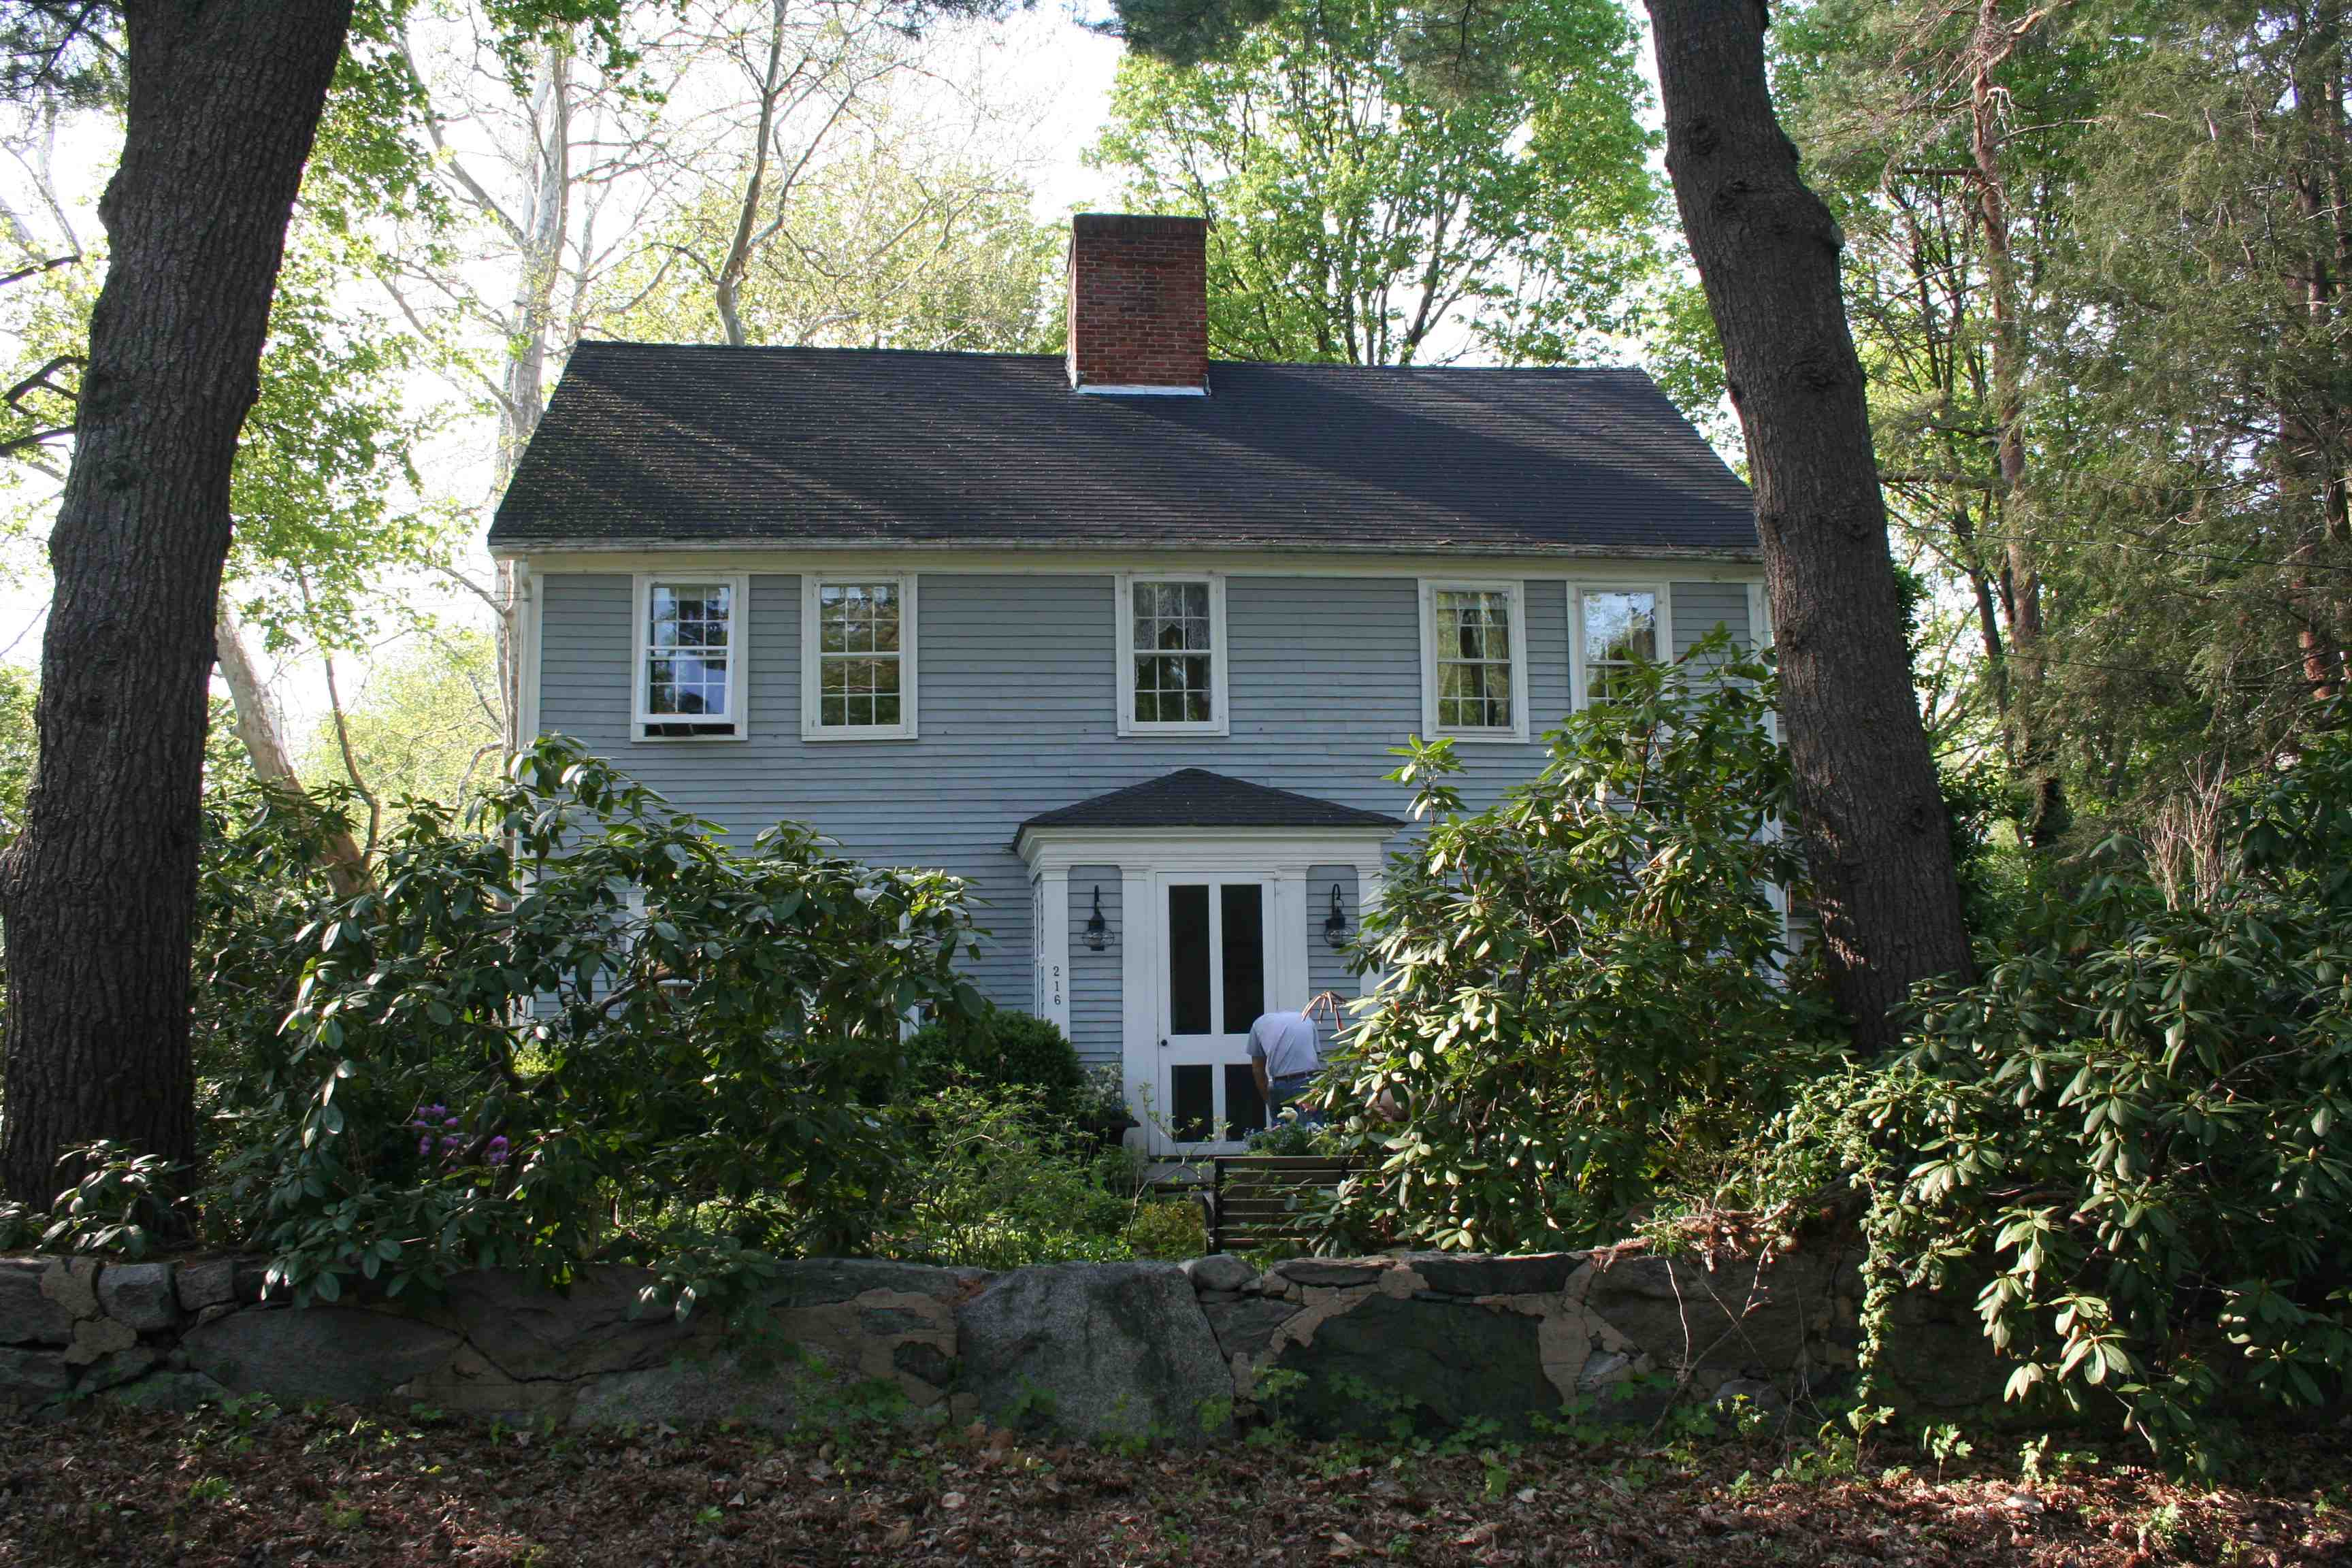 216 Conant Road is the oldest house in the area